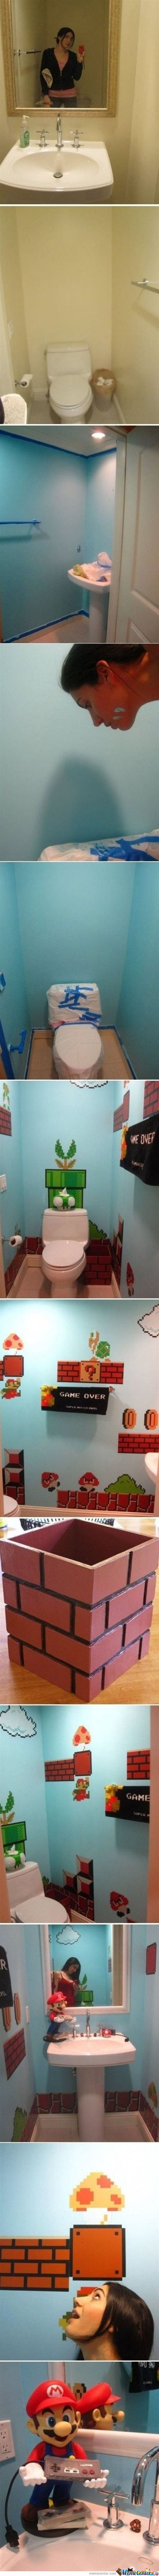 Mario Bathroom!